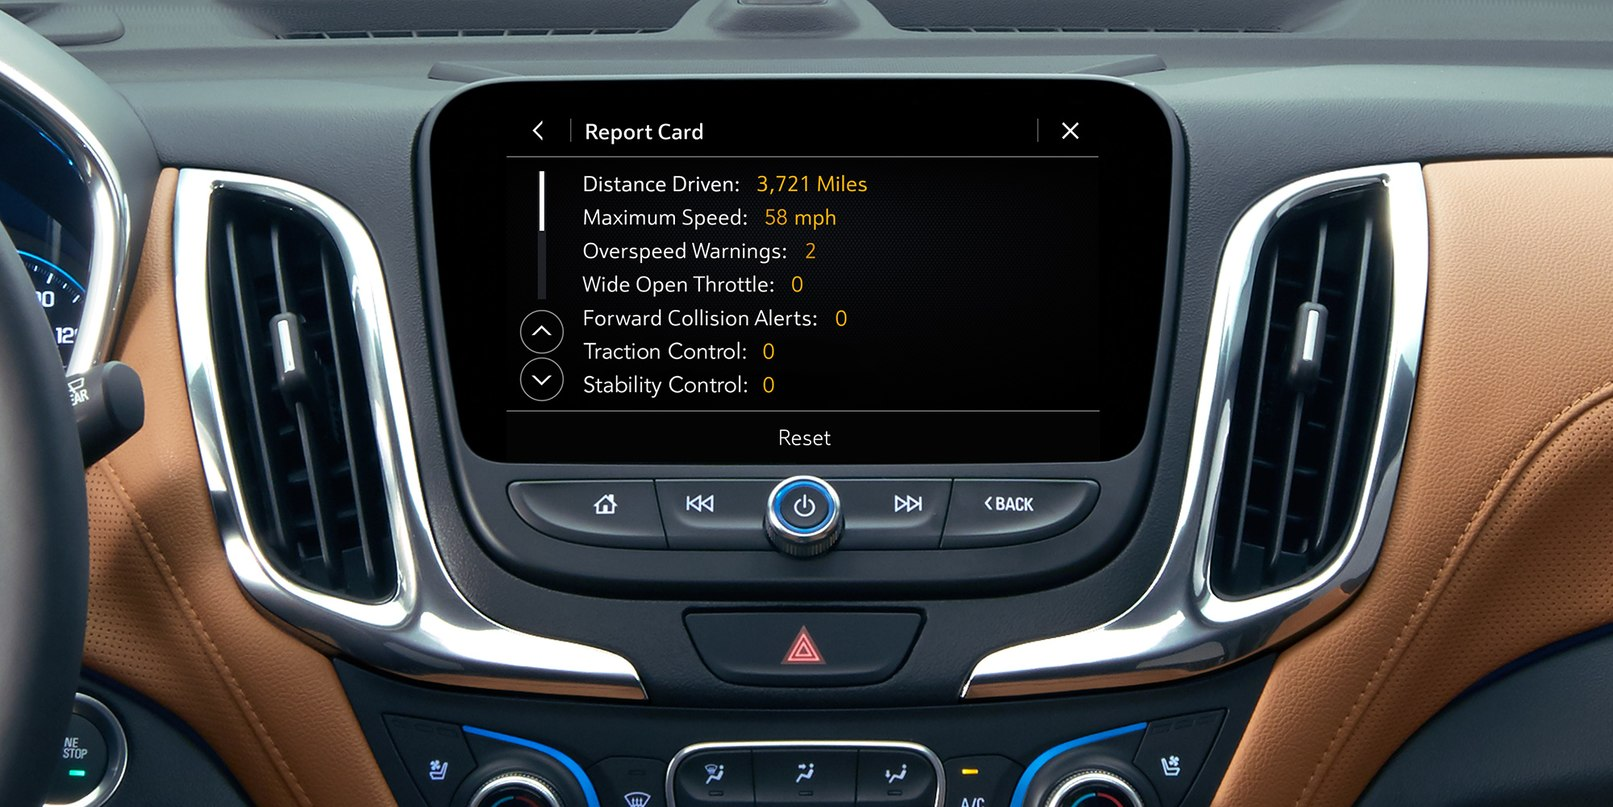 Safety Tech in the 2019 Equinox